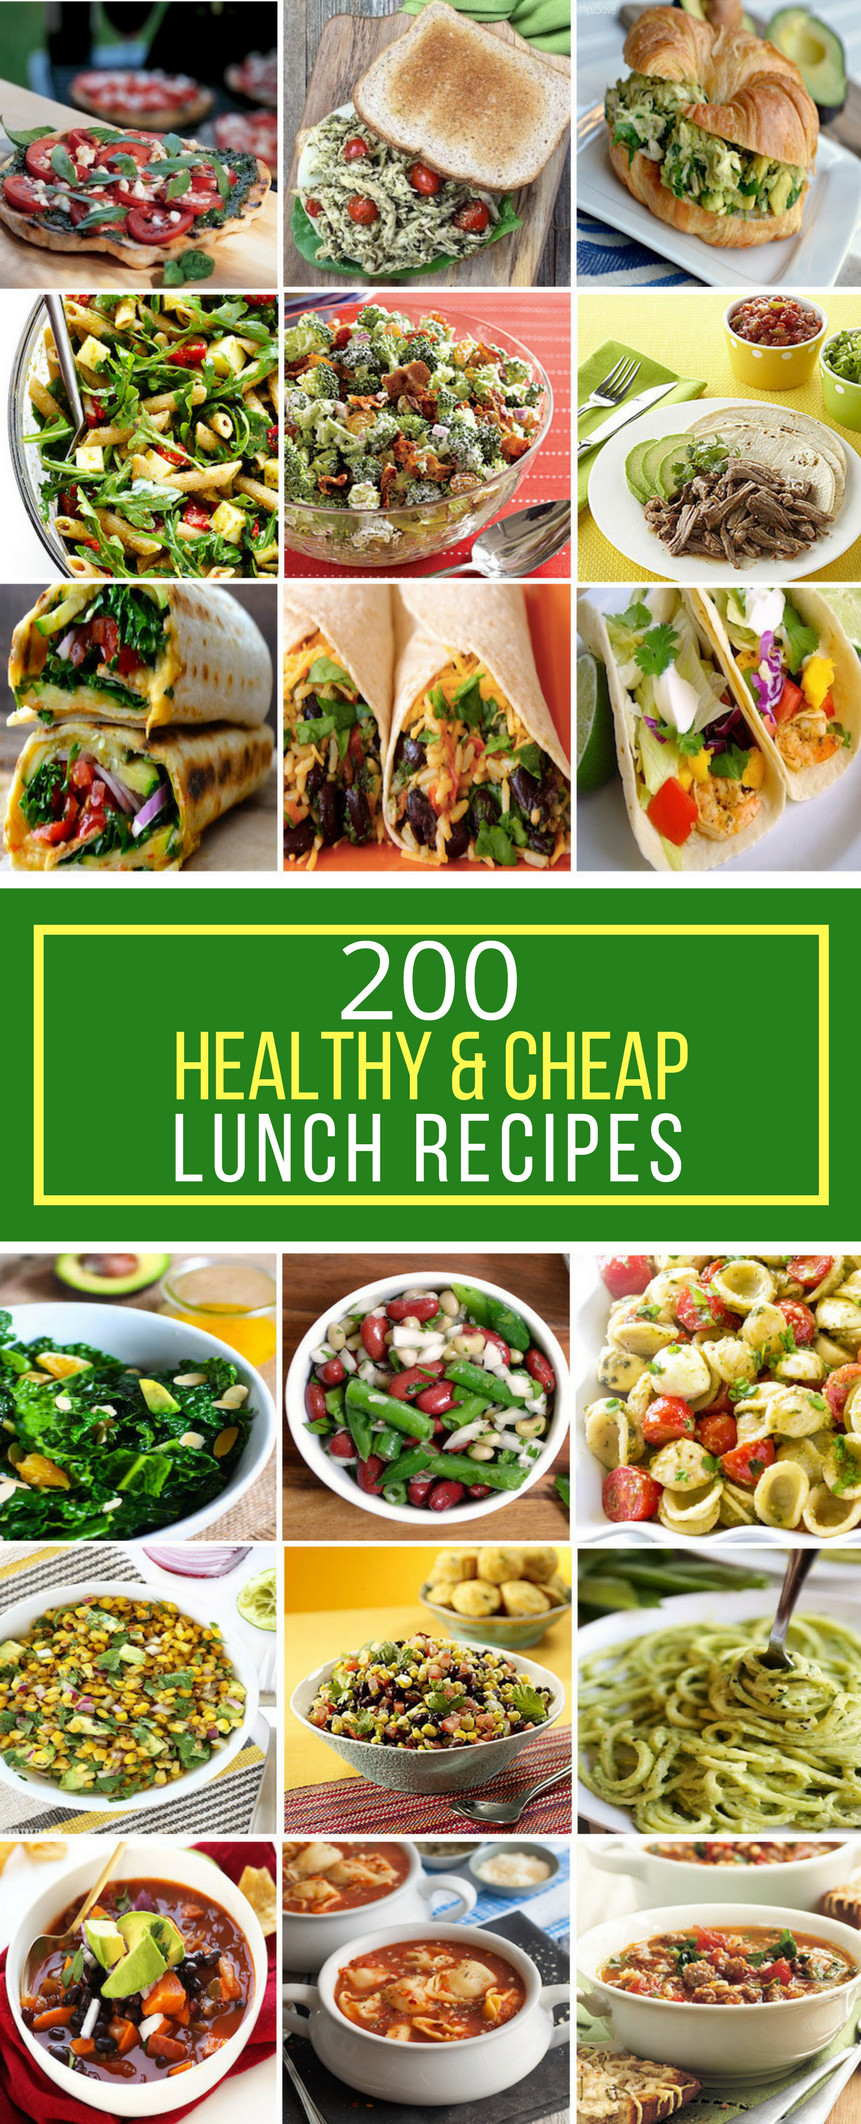 Healthy Cheap Dinner  200 Healthy & Cheap Lunch Recipes Prudent Penny Pincher